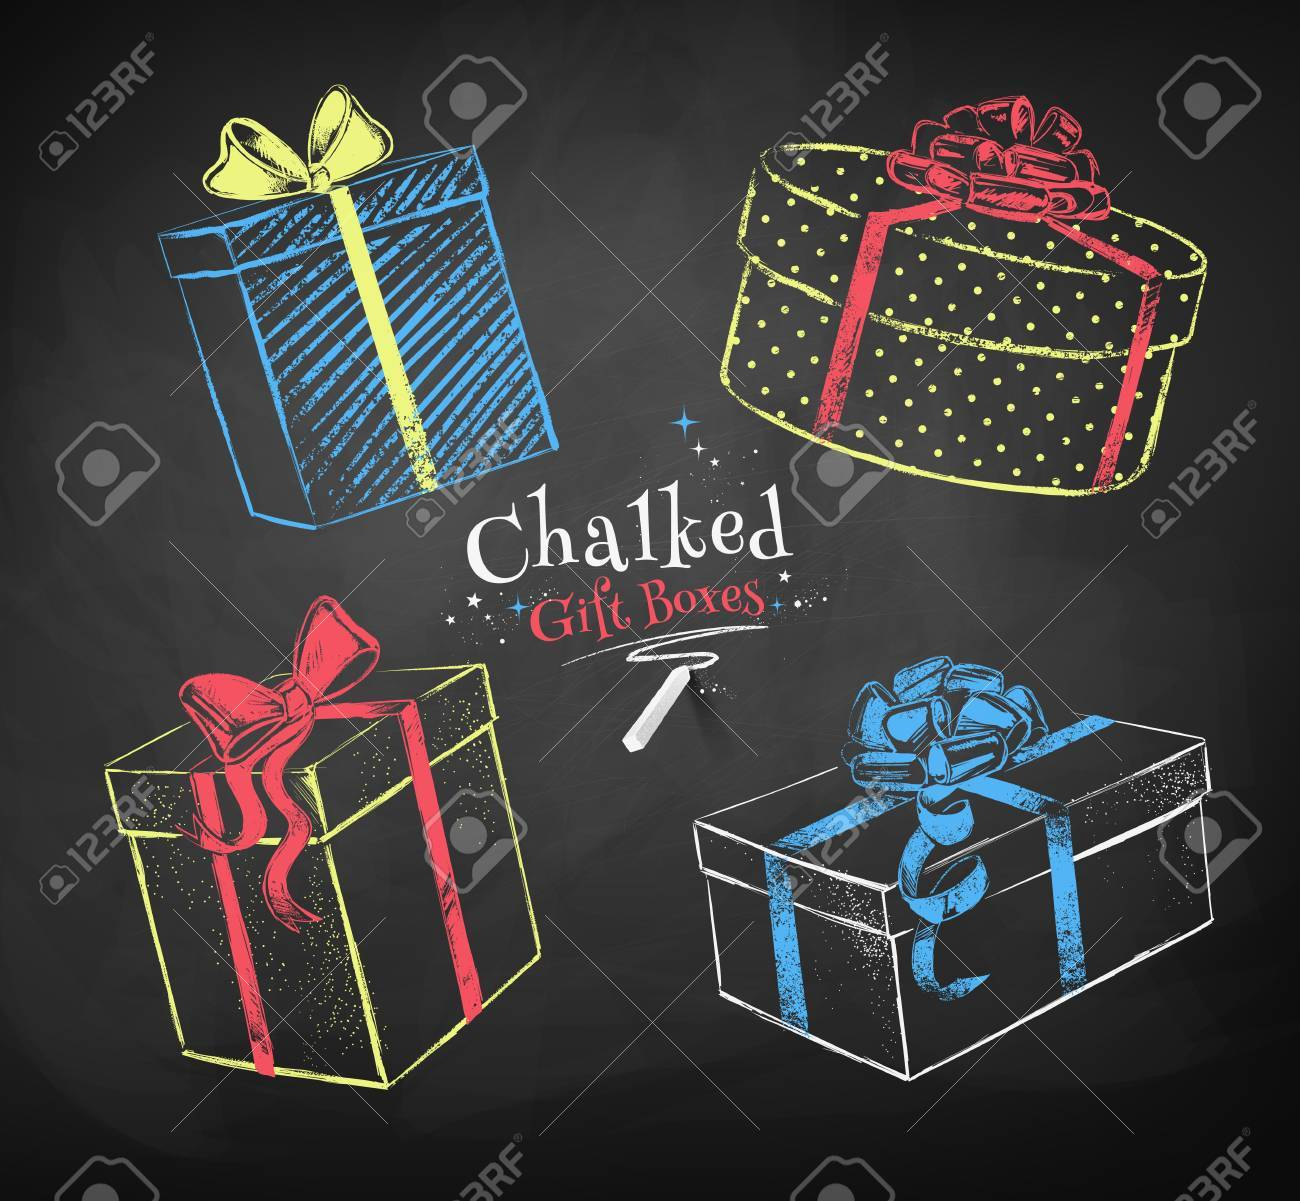 Color Chalk Sketches Of Gift Boxes On Black Chalkboard Background Stock Vector